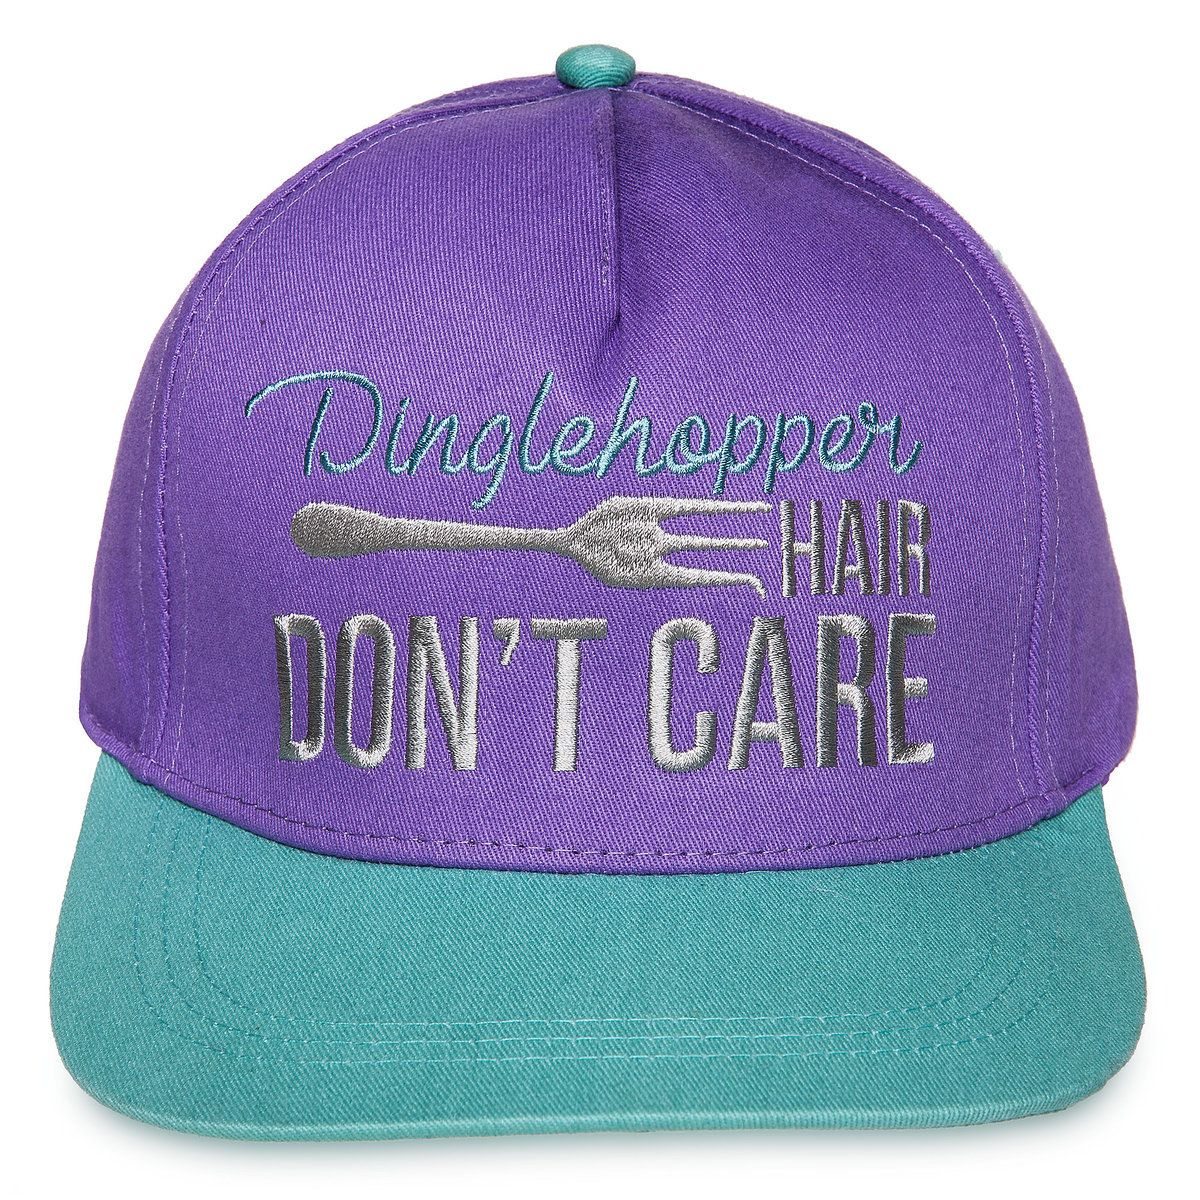 Dinglehopper Hair Don T Care Baseball Cap For Adults The Little Mermaid Disney Hats Disney Outfits Little Mermaid Outfit